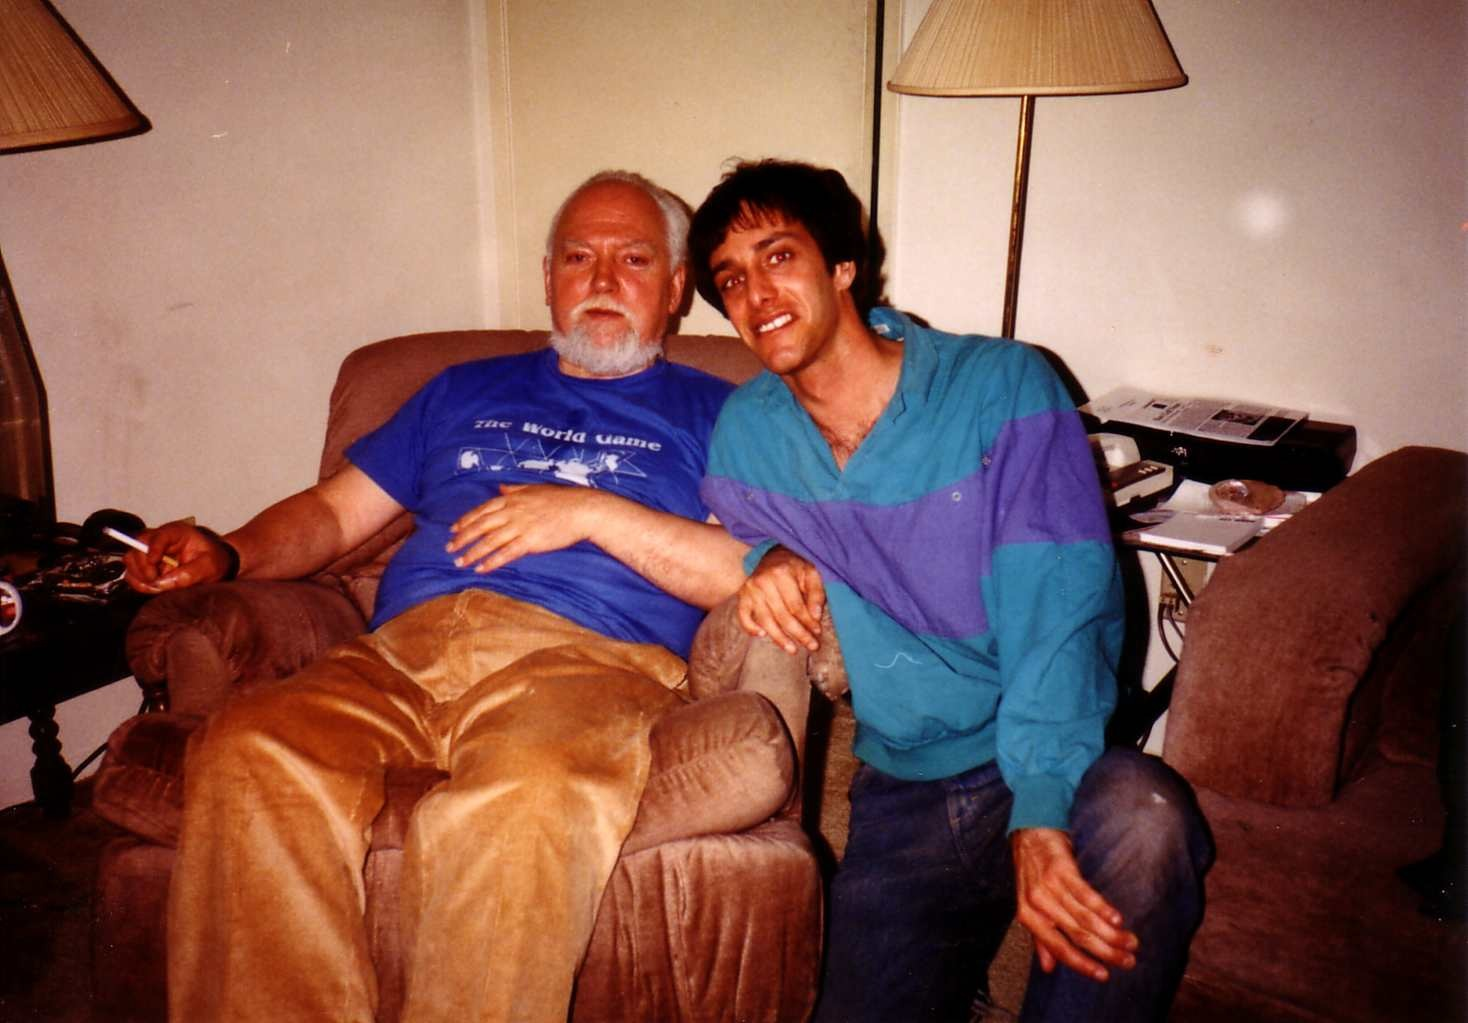 robert anton wilson essay There's an essay i like to share, by robert anton wilson, that gave me the single  best tool for understanding the world and the people in it.